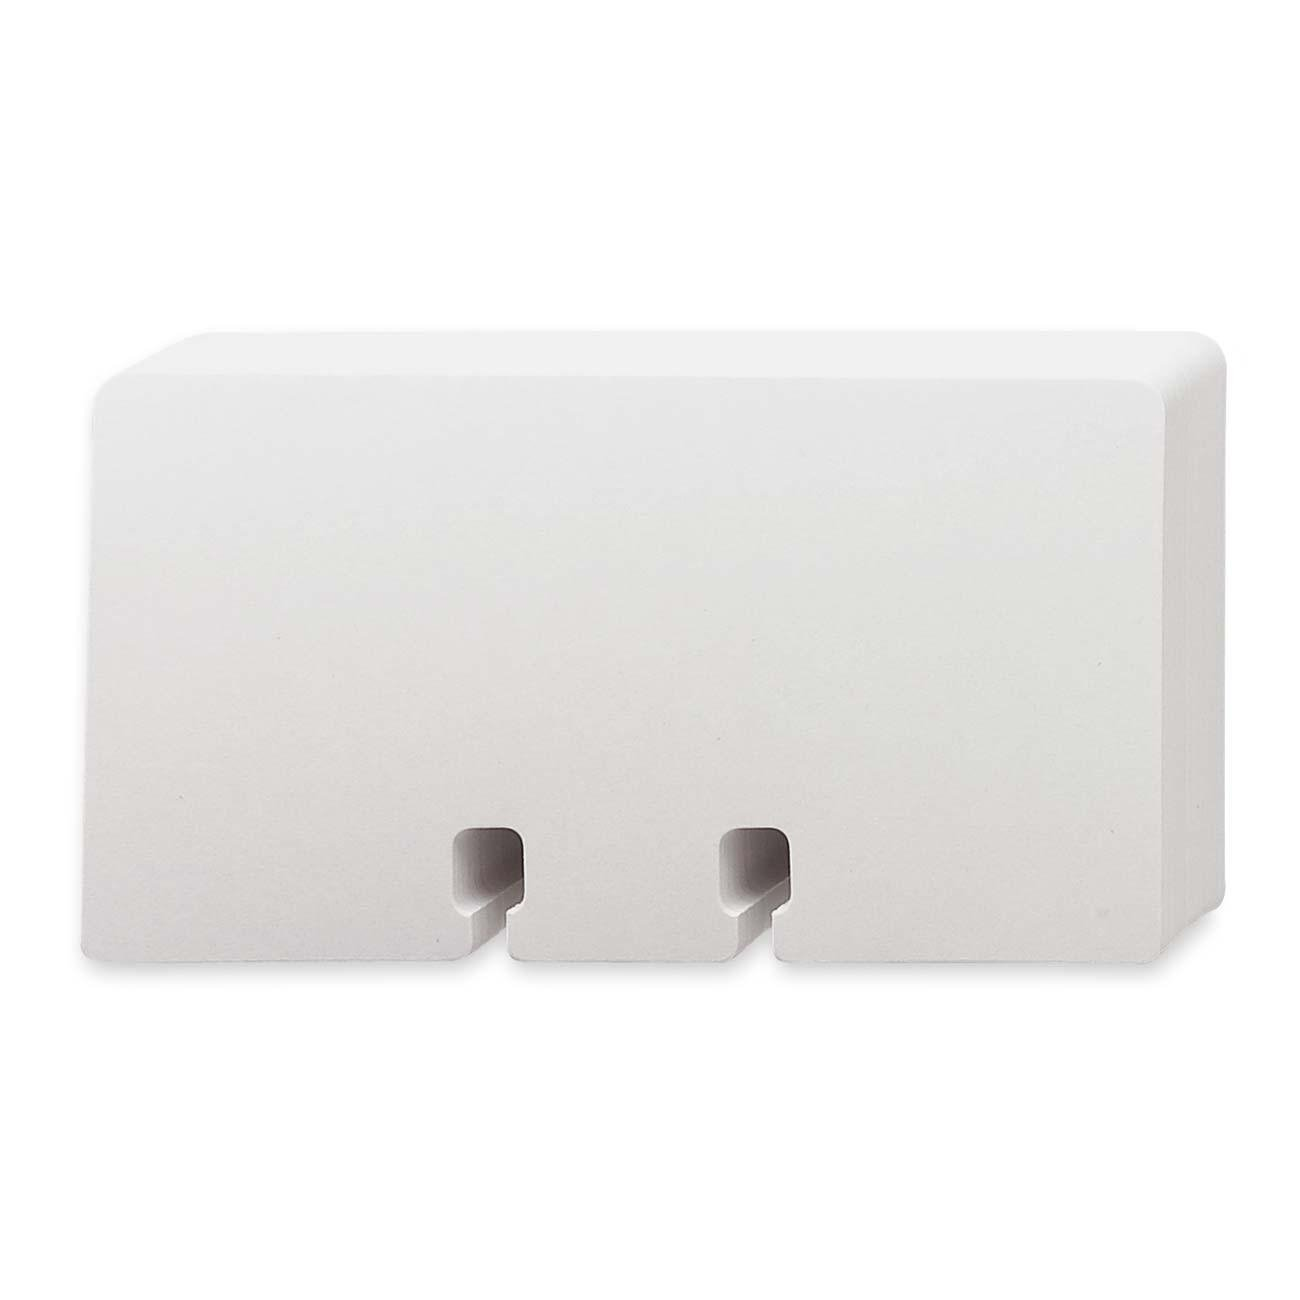 Rolodex Business Card Sleeve Refills - Clear - Pack of 40: Amazon ...